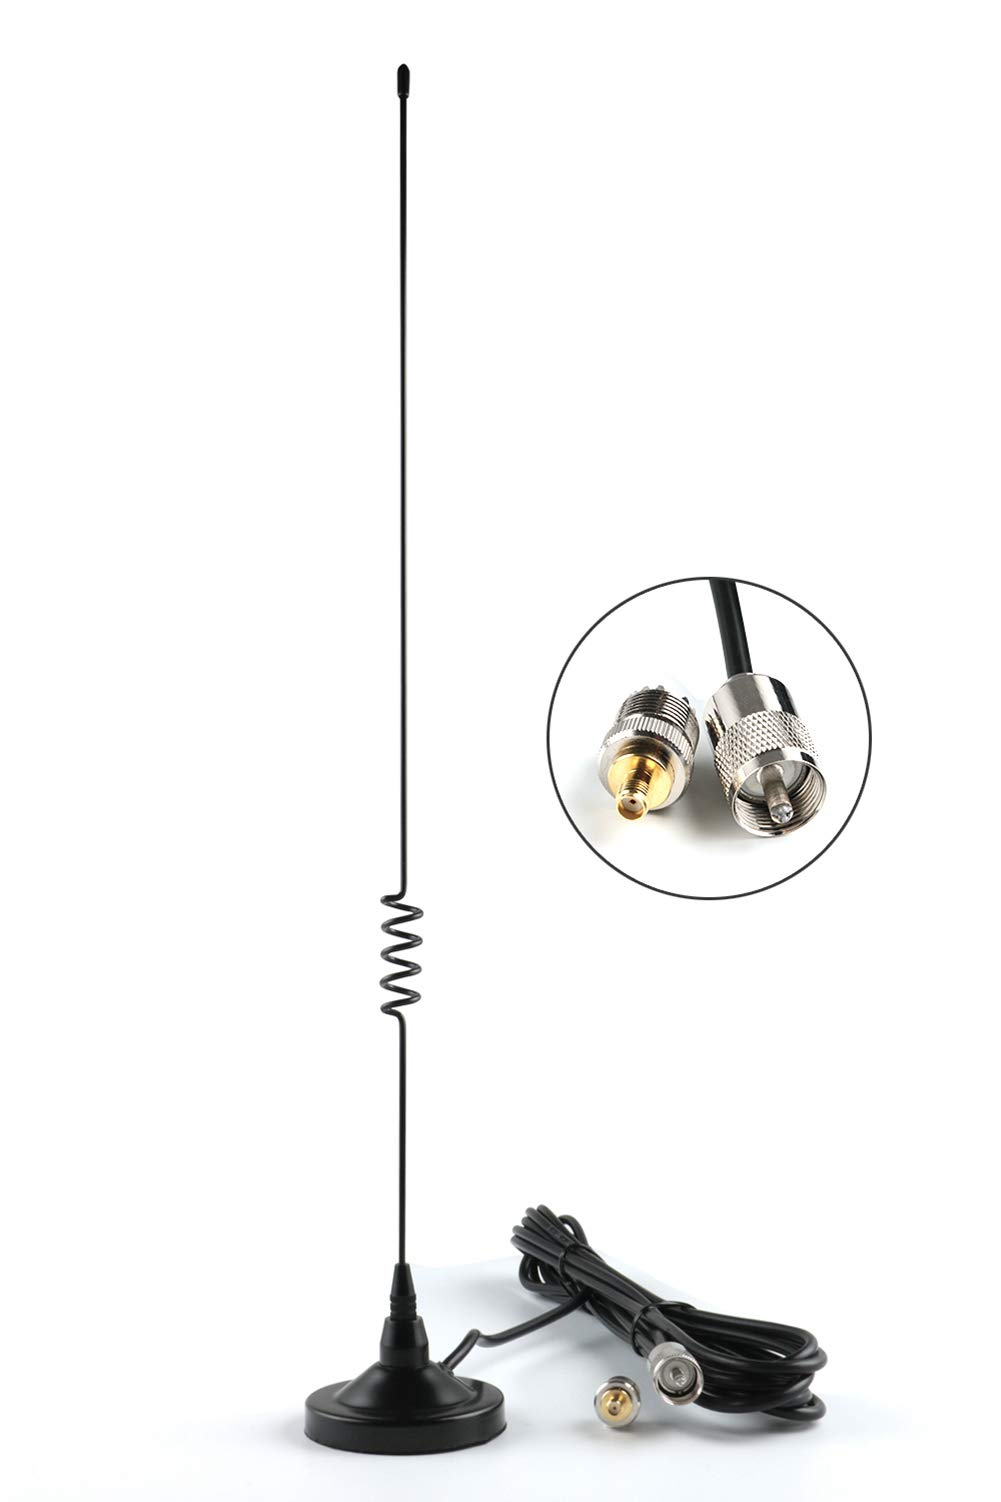 CB Radios Antenna Dual-Band VHF/UHF (136-174, 400-470 Mhz) with PL-259 Connector and SMA-F Adaptor and 16FT Cable for YAESU ICOM CB Radios by KCTIN